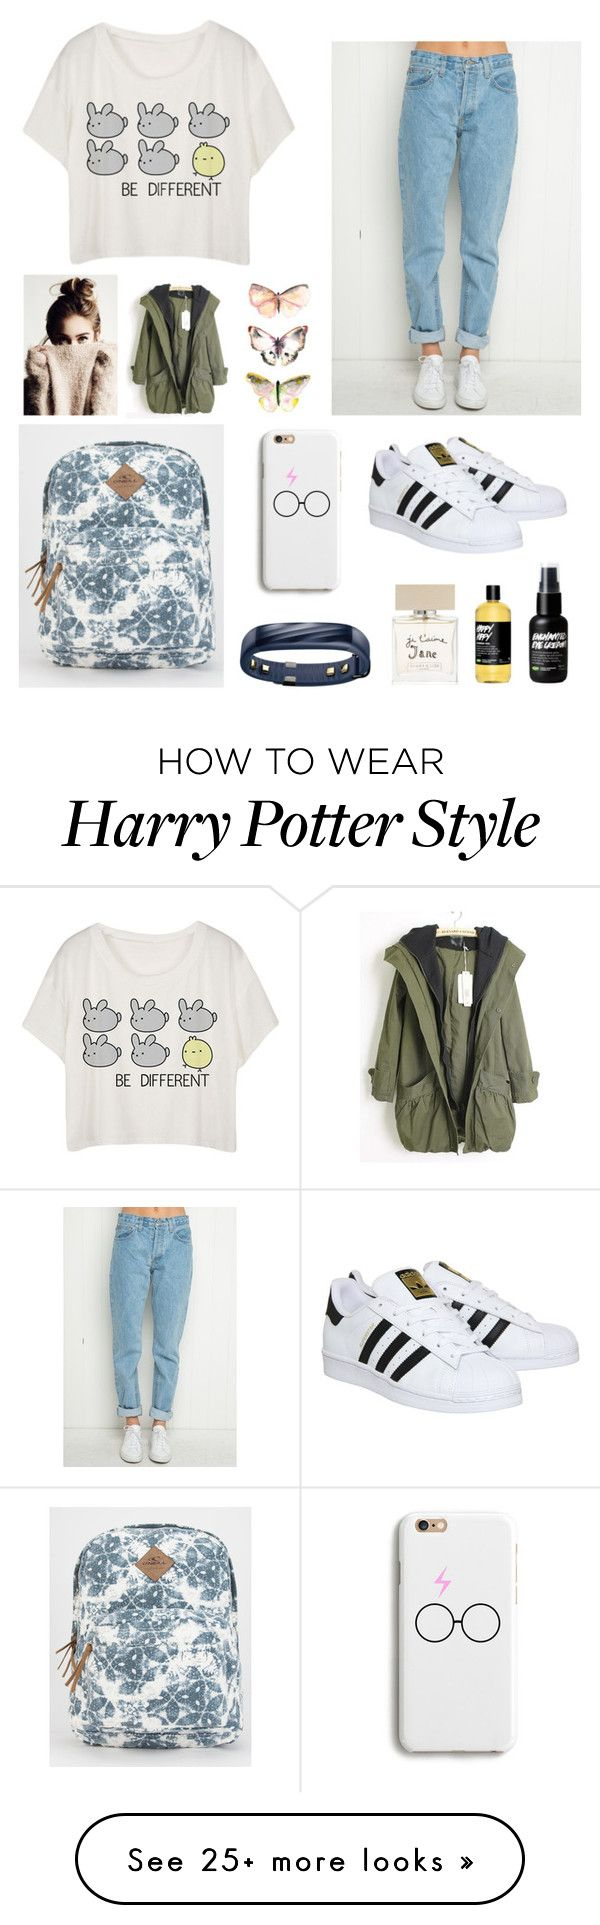 """""""OOTD #19"""" by janelingodfrey on Polyvore featuring O'Neill, adidas, Jawbone and Bella Freud"""